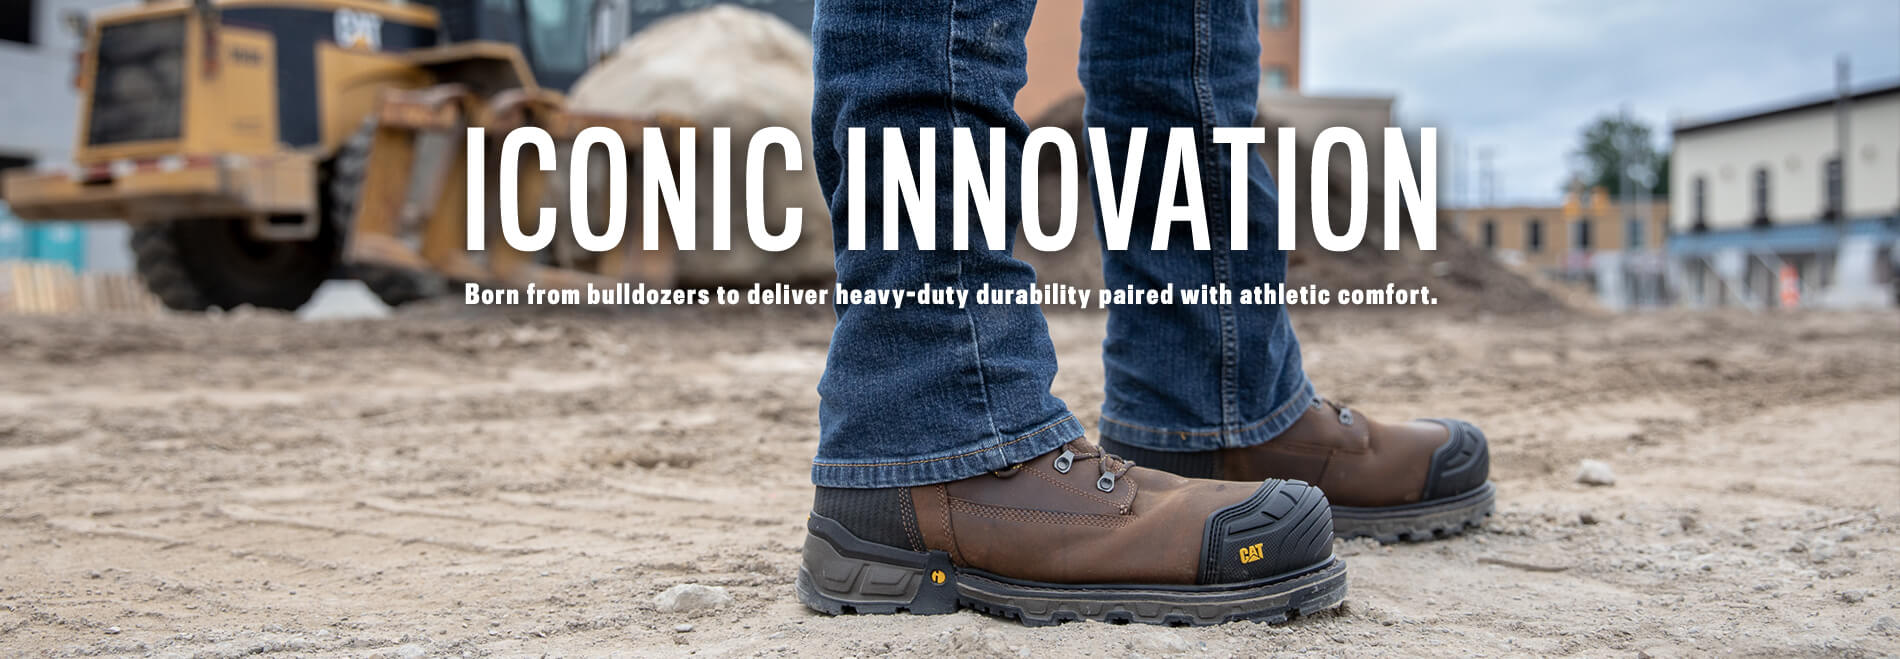 Iconic Innovation | Born from bulldozers to deliver heavy-duty durability paired with athletic comfort.